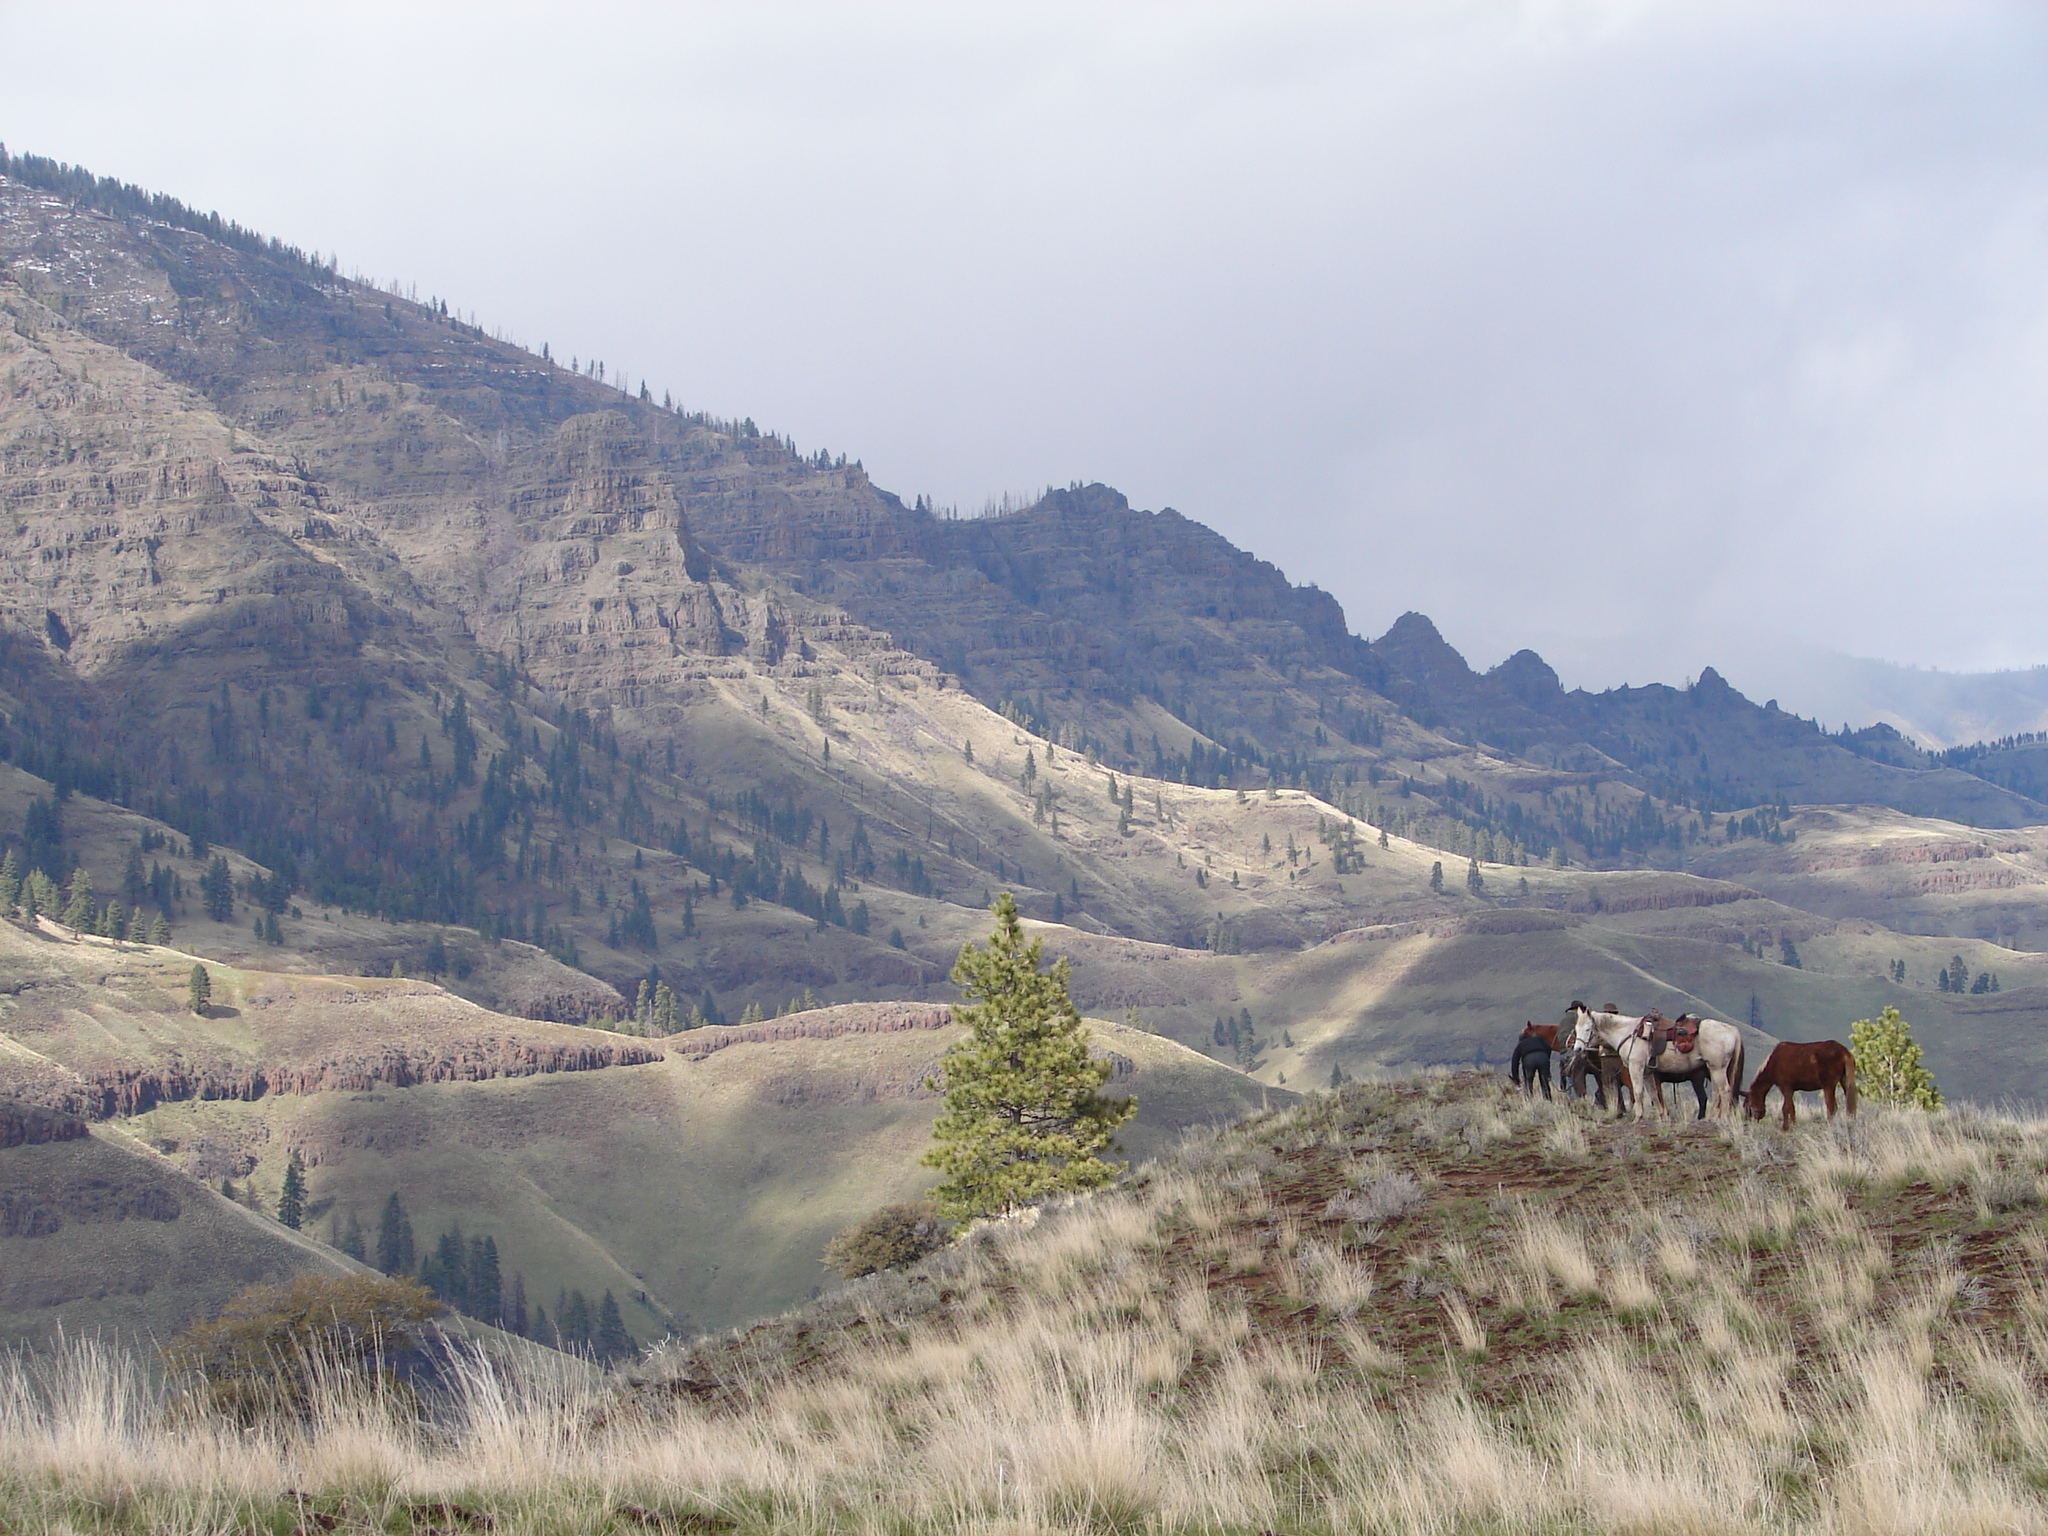 Image of mountain grassland bench with horses and riders